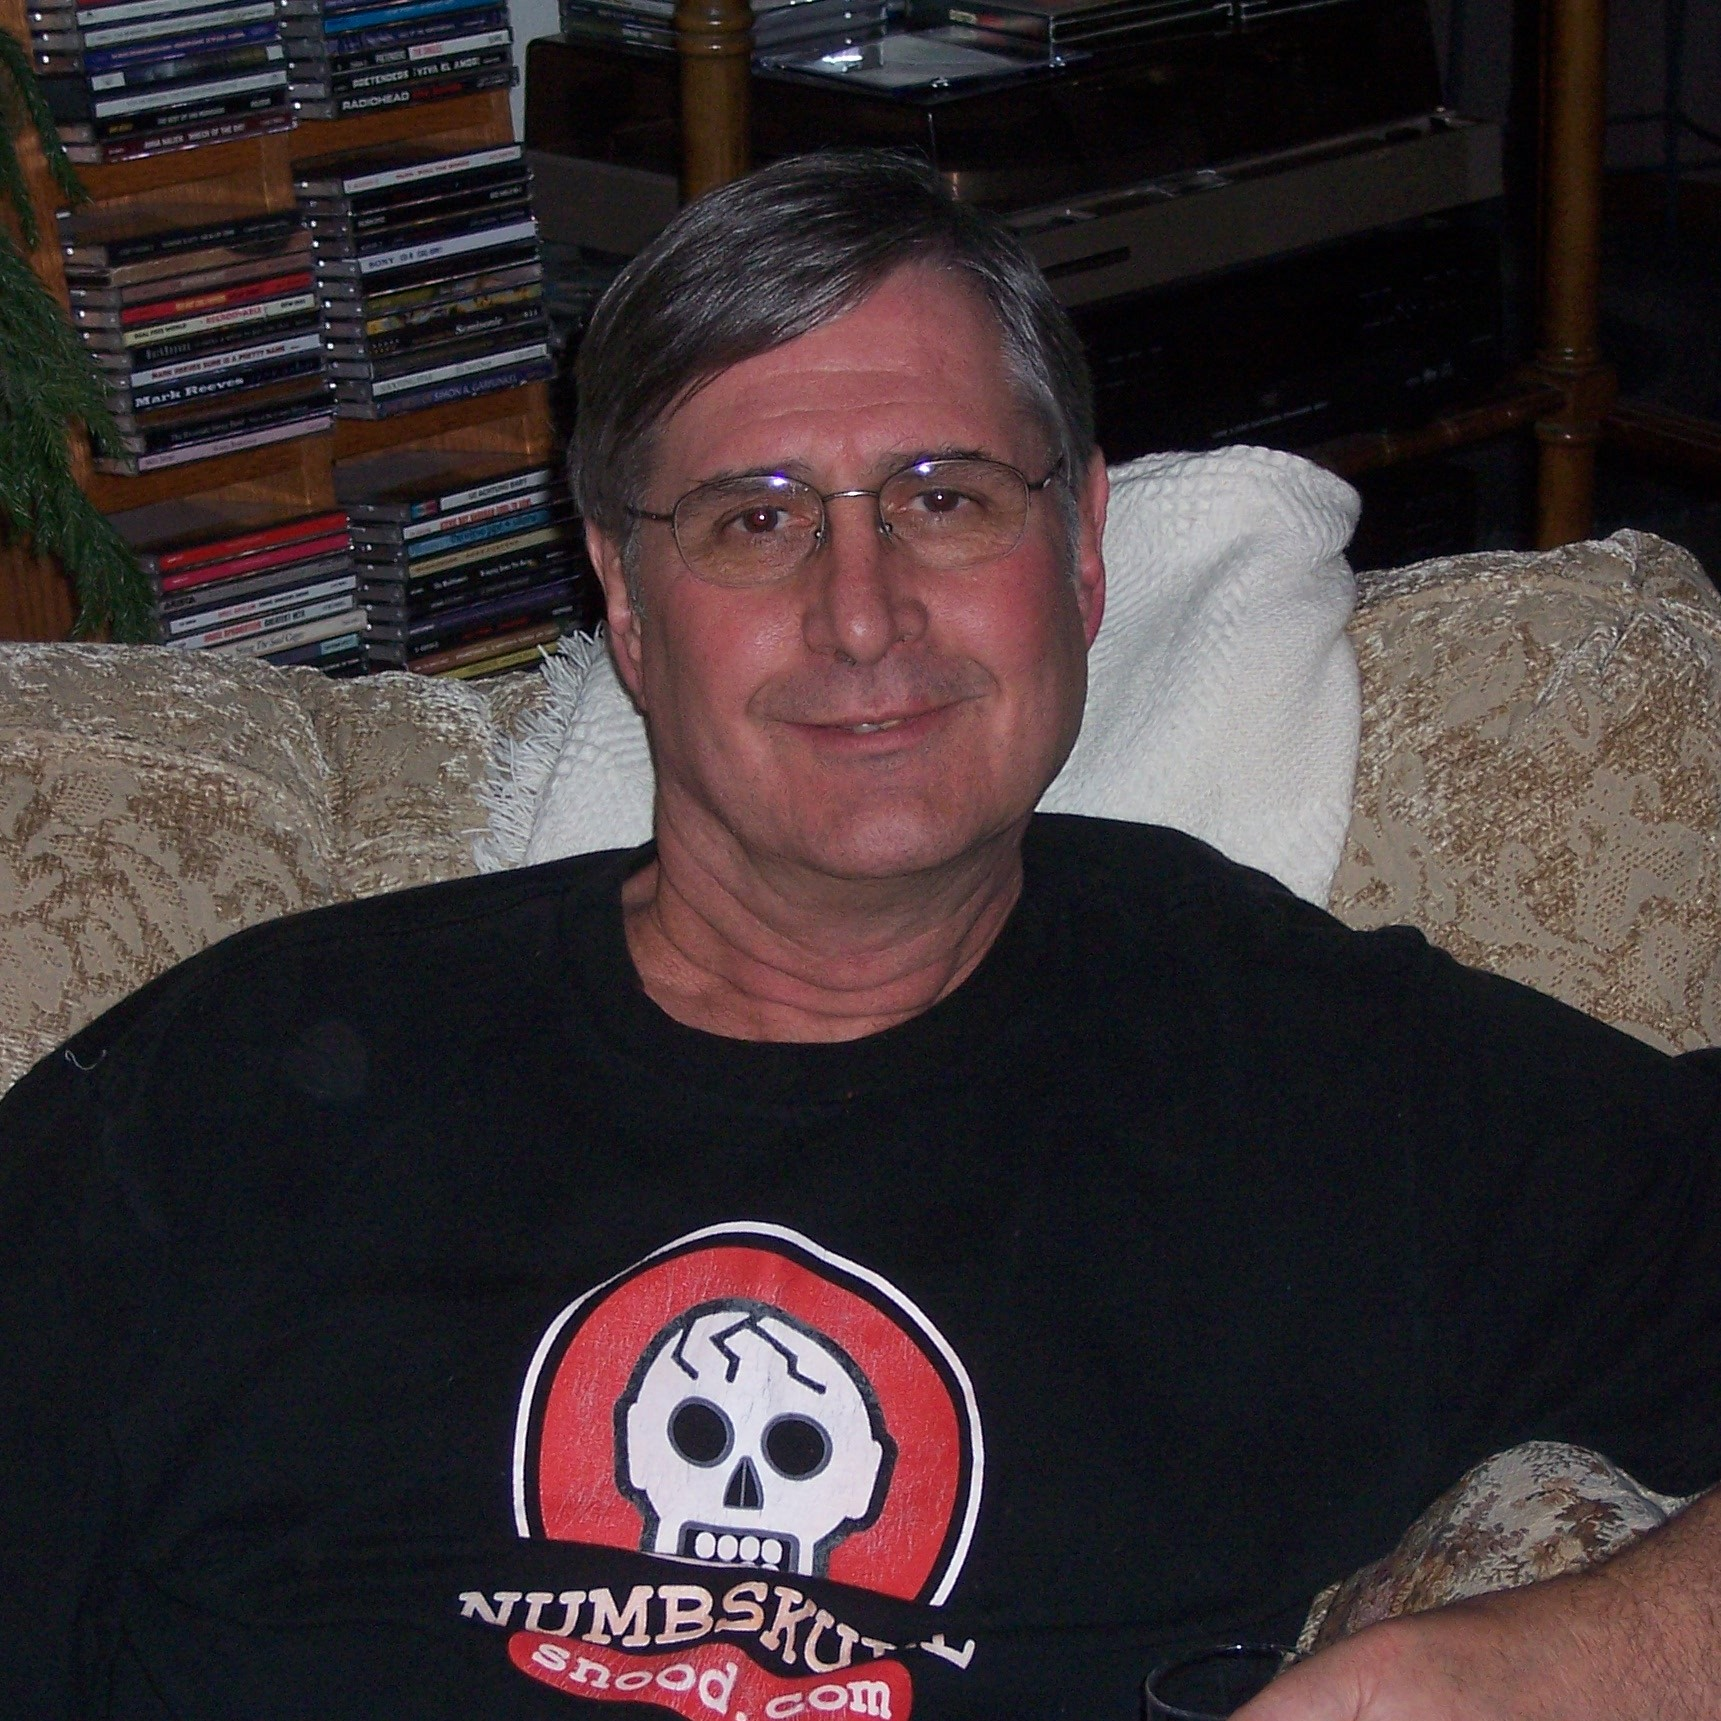 Mike McDonnell